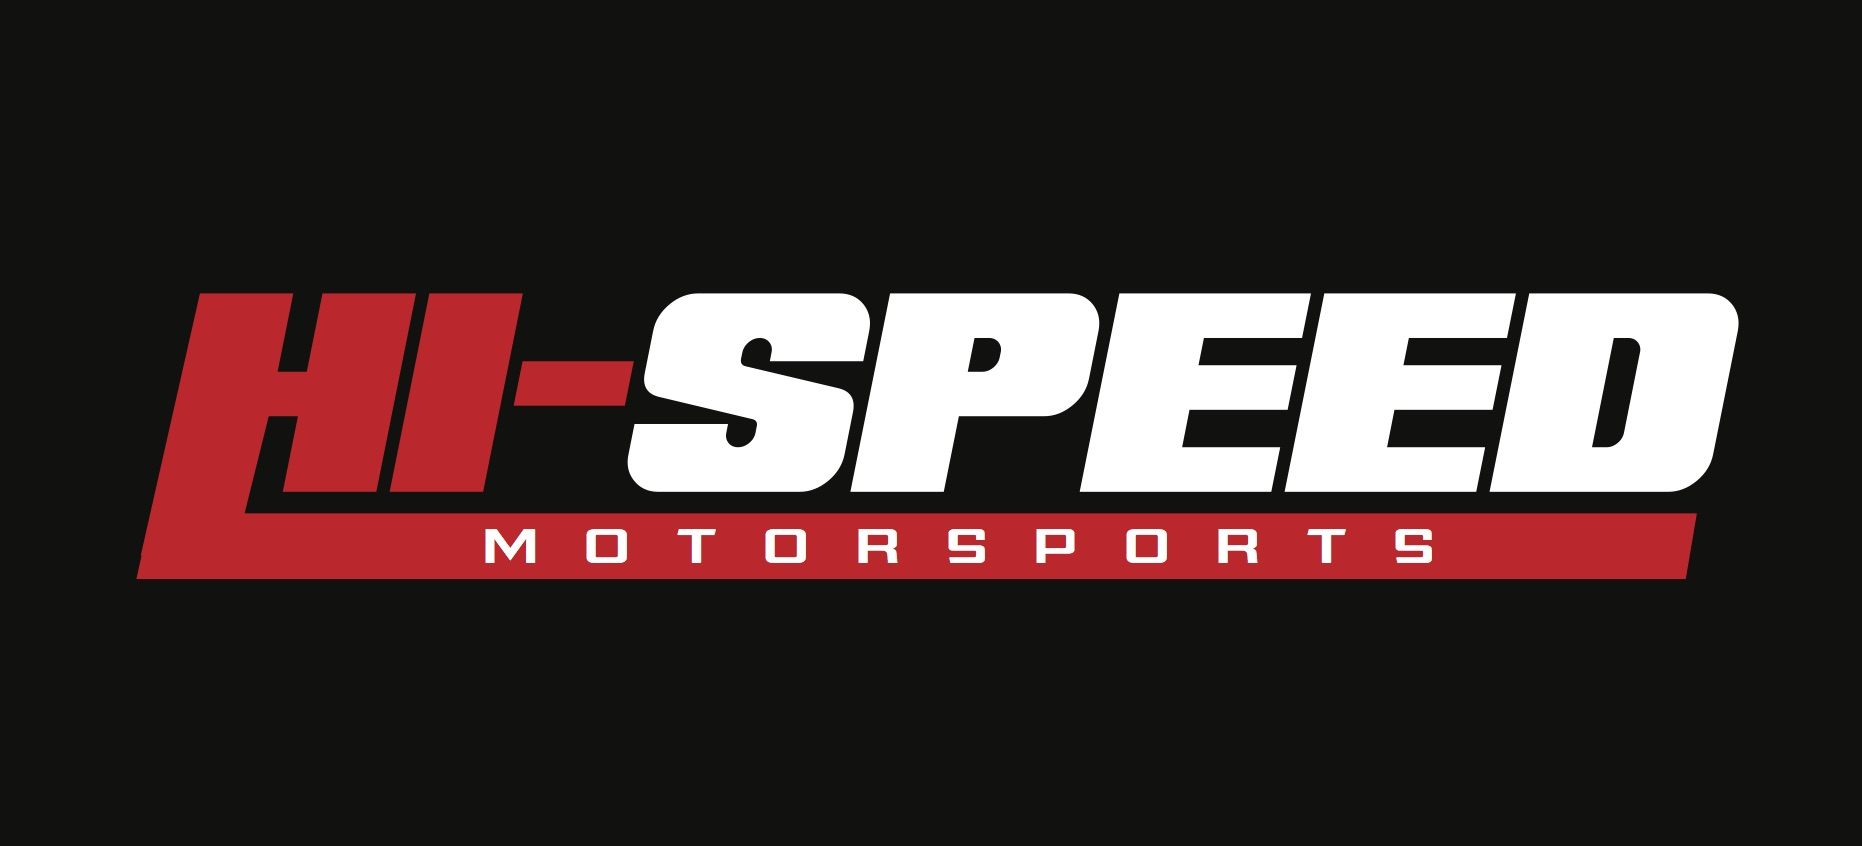 Hi Speed Motorsports